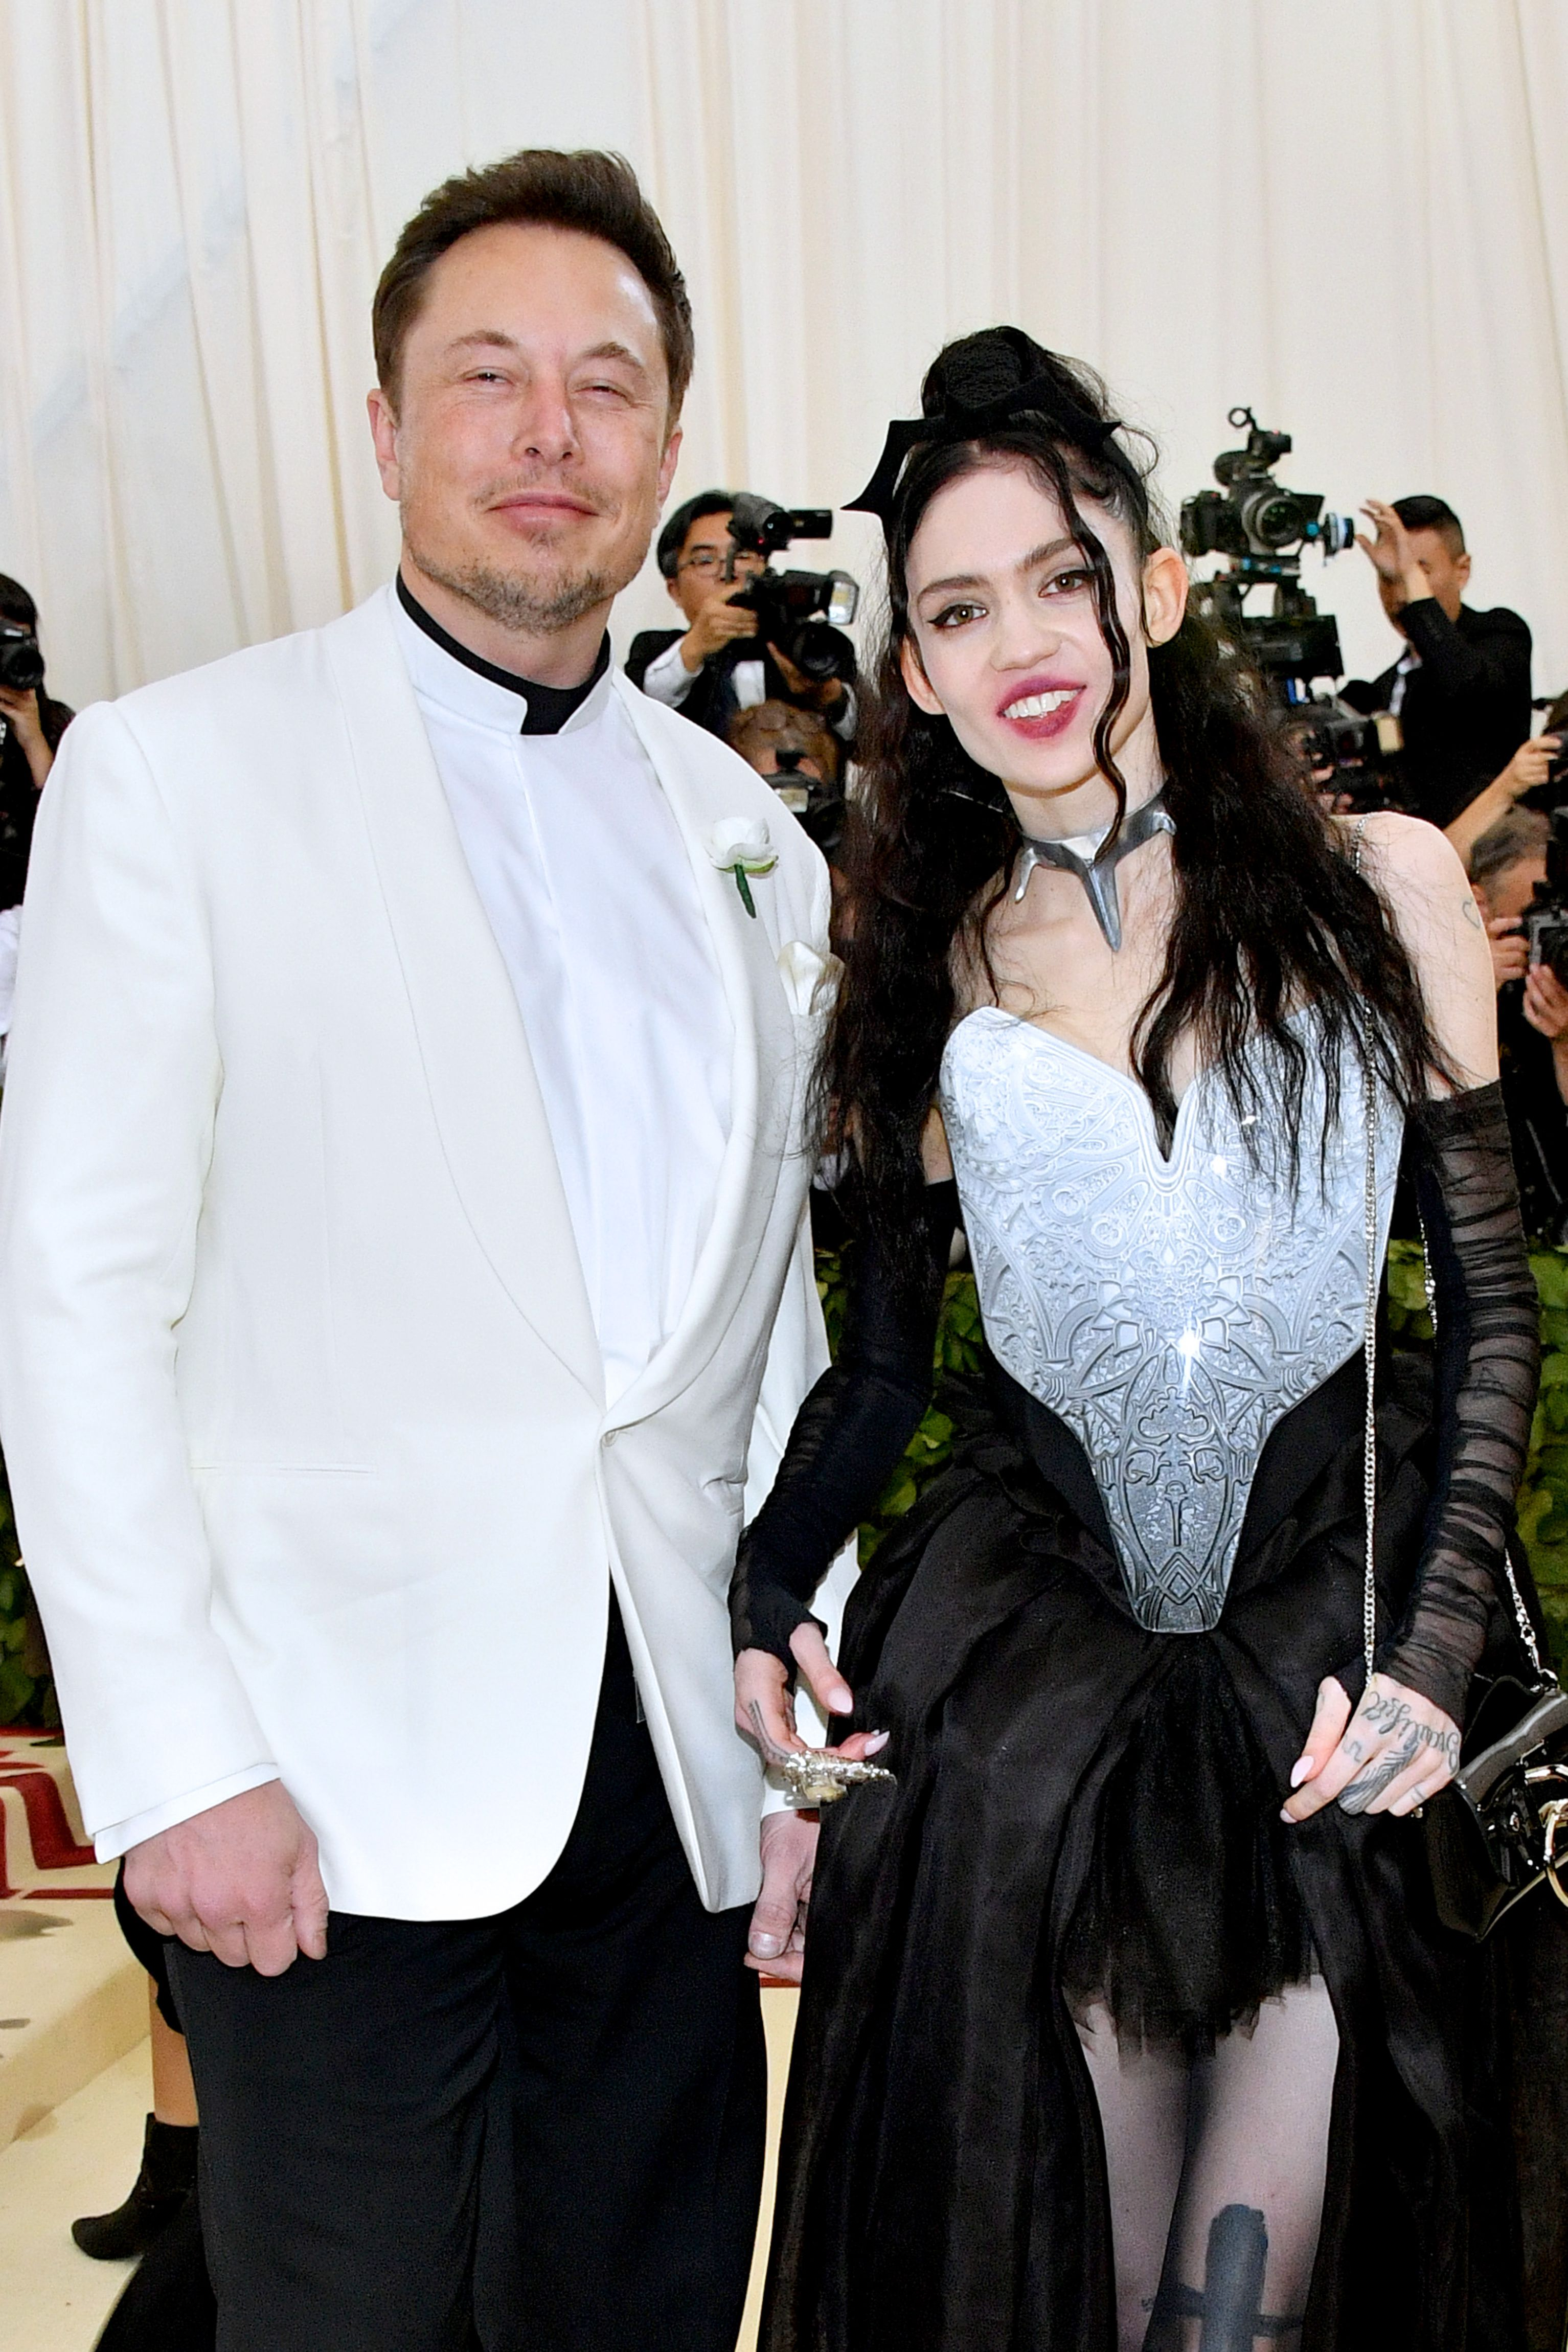 He's currently dating the musician Grimes.